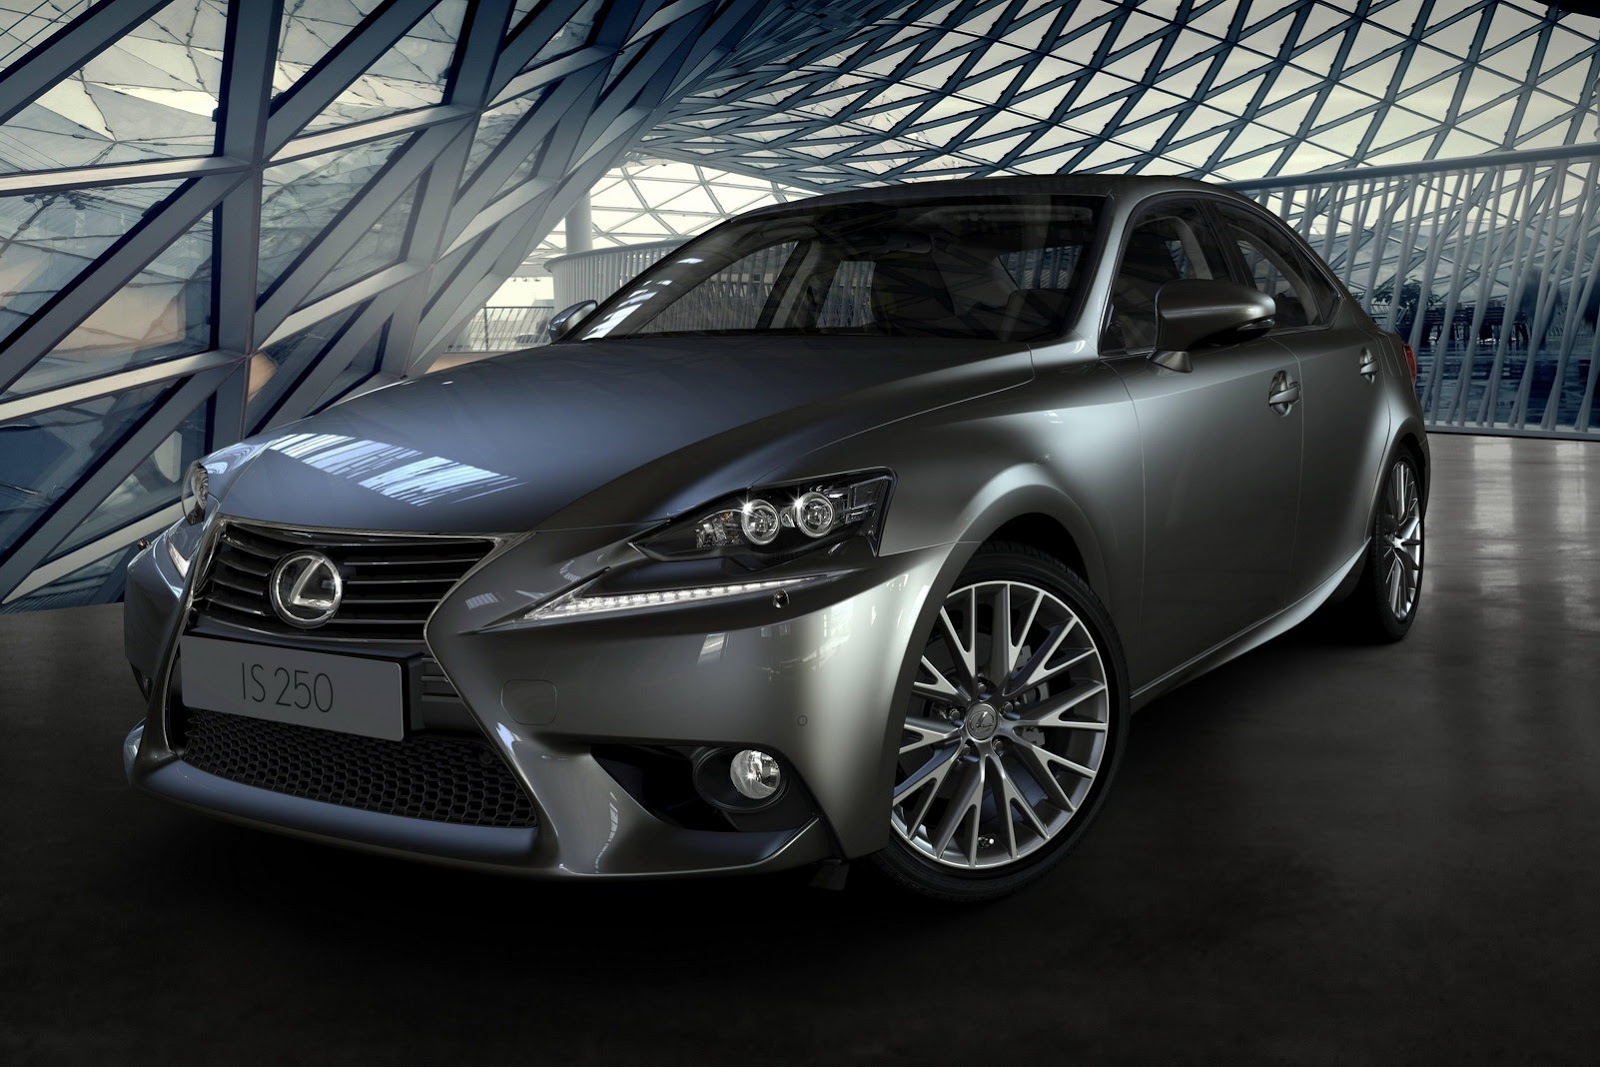 https://s1.cdn.autoevolution.com/images/news/gallery/2014-lexus-is-us-pricing-announced-photo-gallery_26.jpg